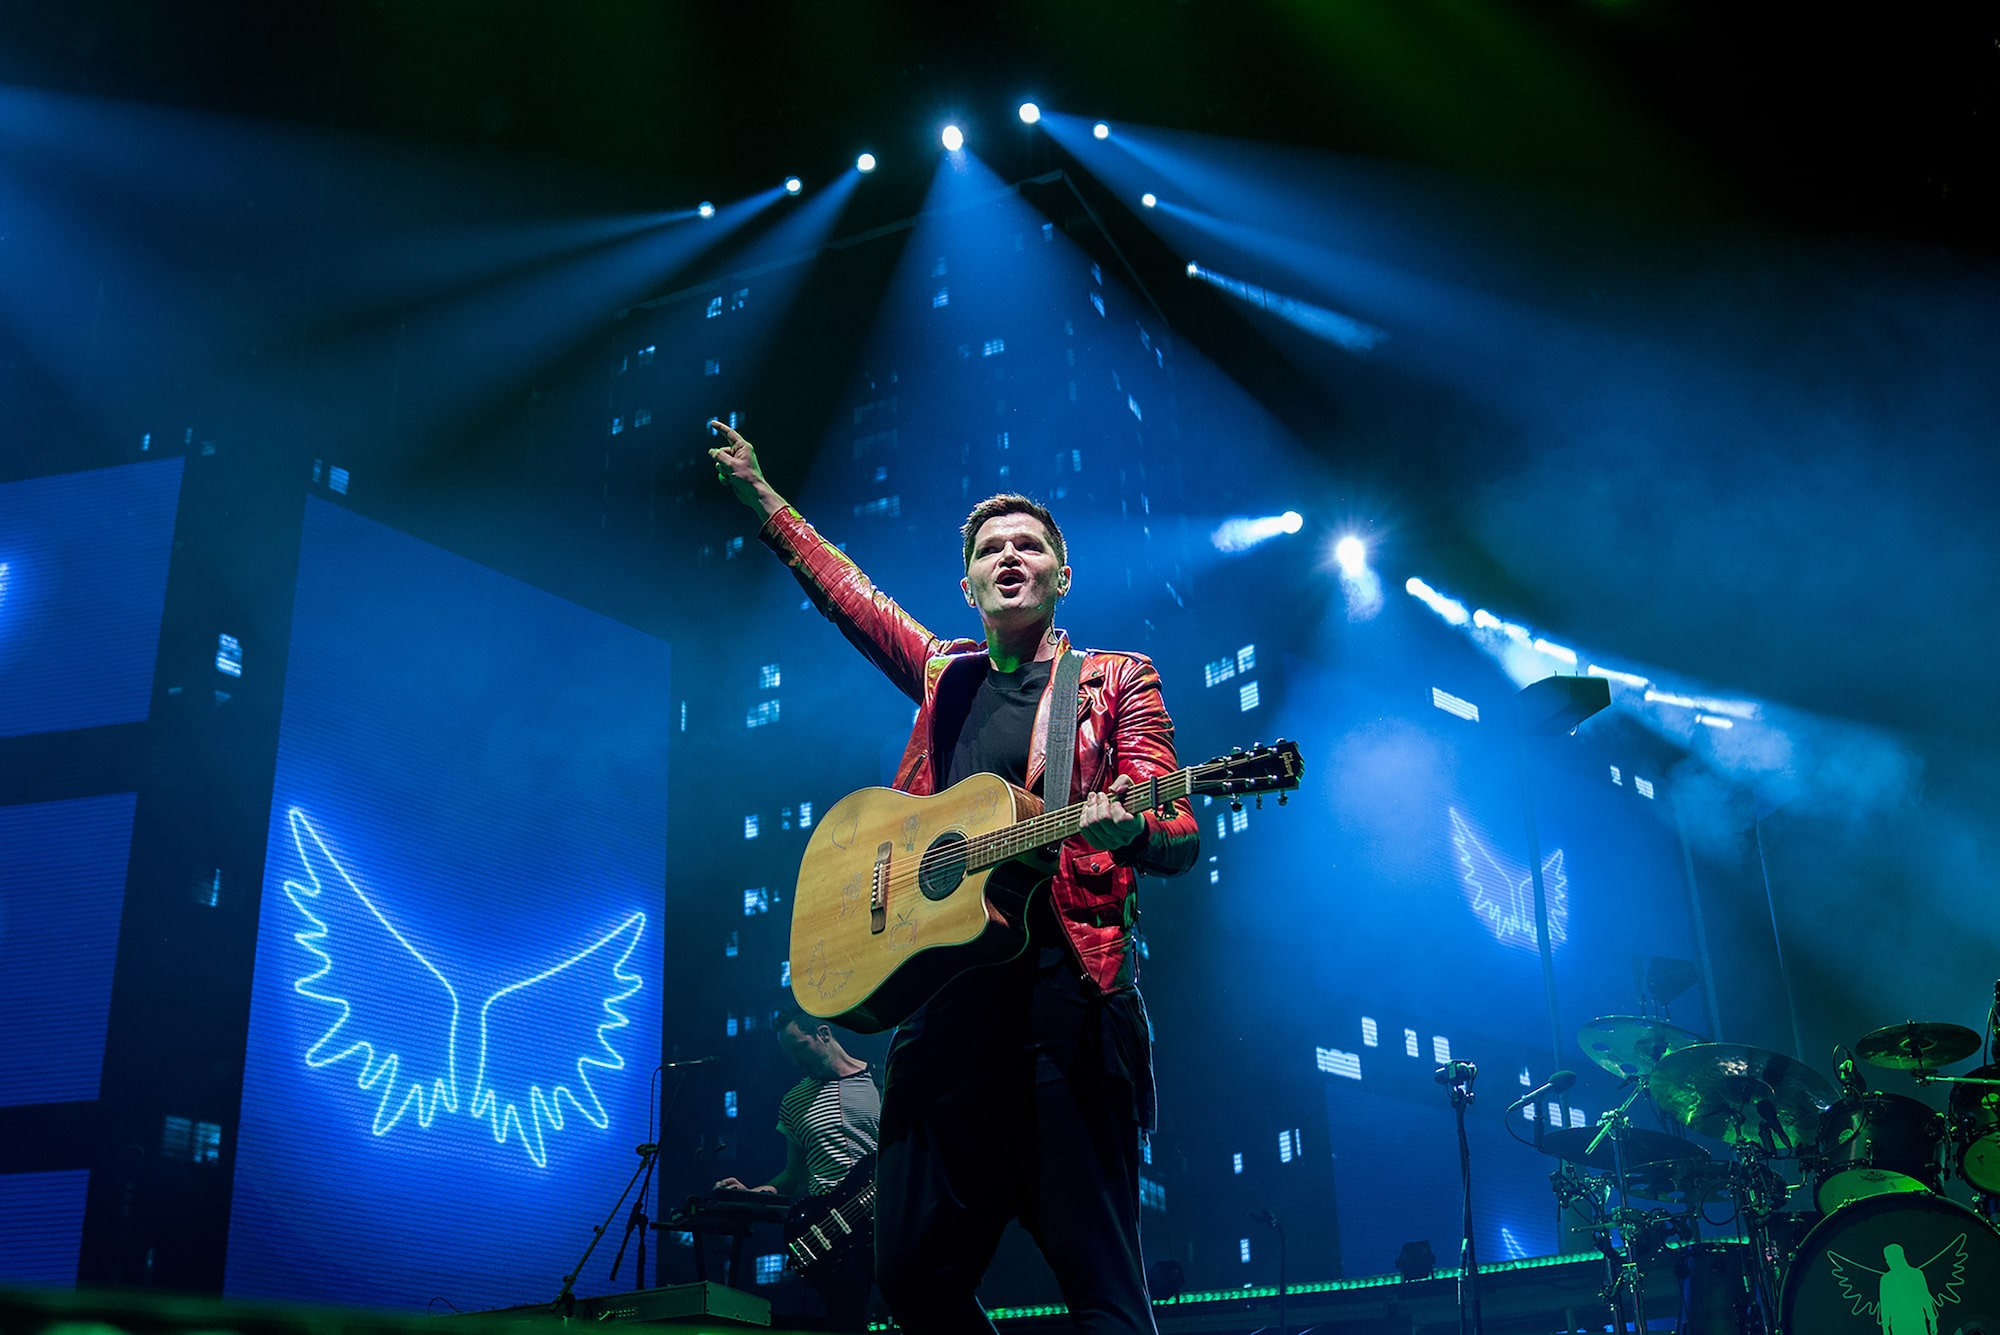 peter-neill-sony-alpha-7RIII-the-script-lead-singer-with-gibson-acoustic-in-concert